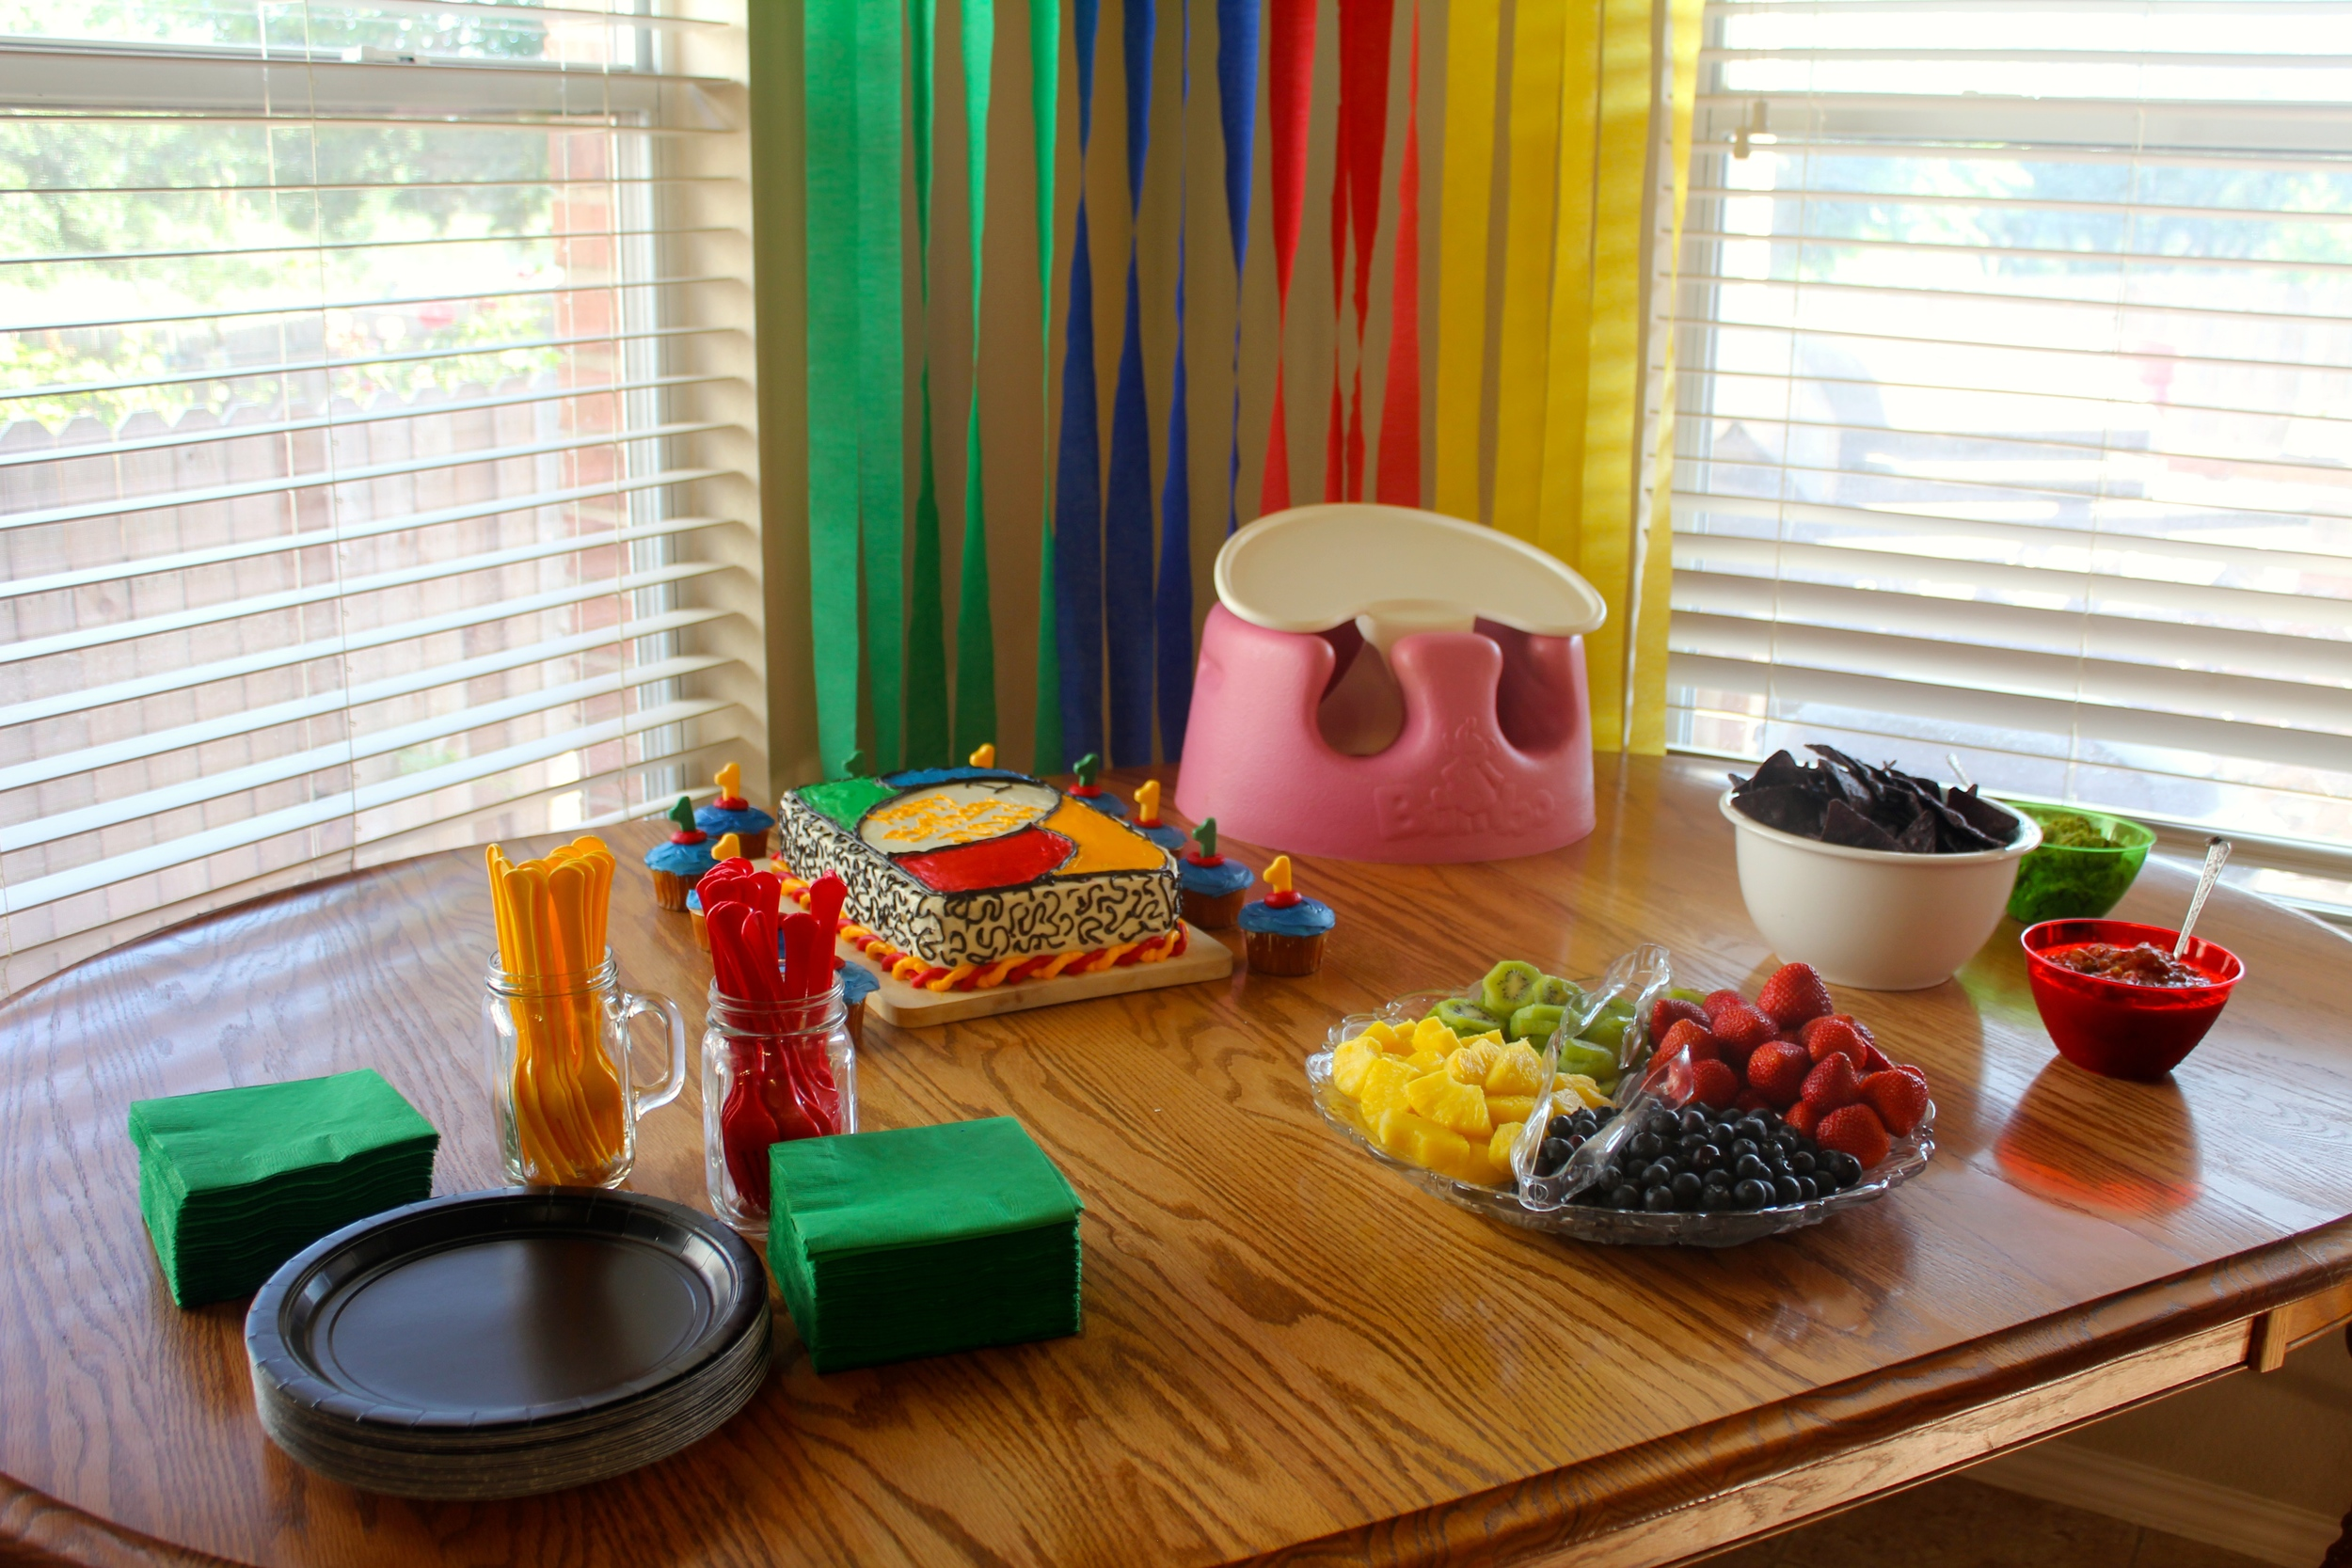 Joshua grilled fajitas, but our snack table attempted to stay in color theme...we just missed out by keeping the queso in the crockpot on the kitchen counter!